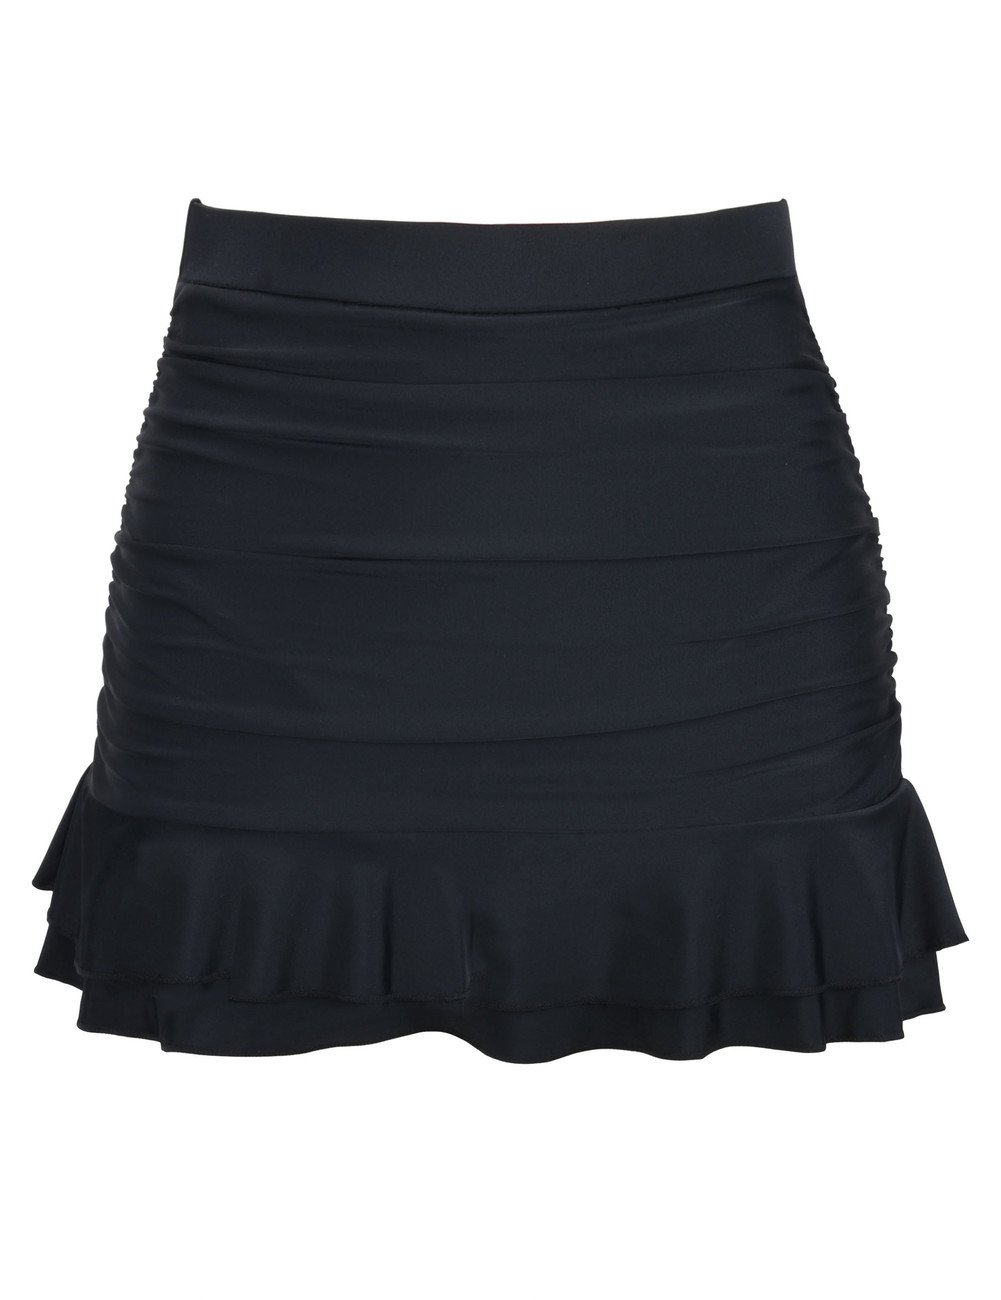 Hilor Women's Skirted Bikini Bottom High Waisted Shirred Swim Bottom Ruffle Swim Skirt Black 10(fits 6) by Hilor (Image #1)